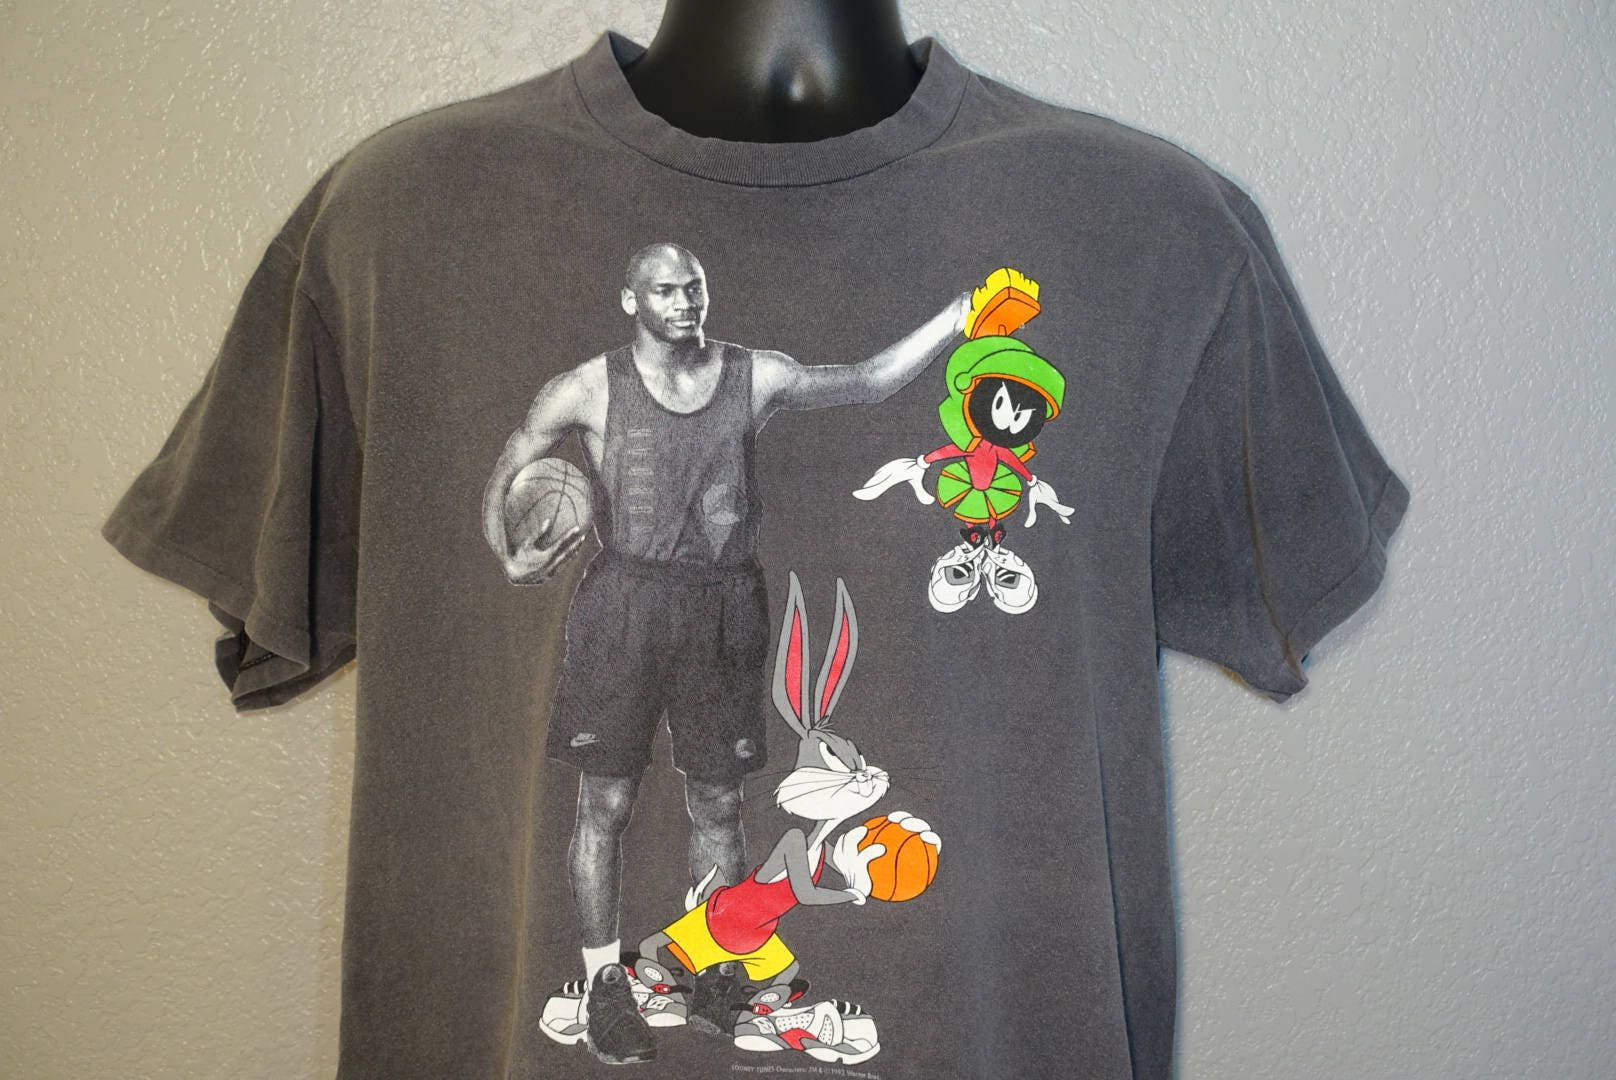 69093e36 1993 RARE Space Jam - Nike Michael Jordan Looney Tunes Marvin the Martian & Bugs  Bunny XL Heavy Faded Vintage T-Shirt. gallery photo ...